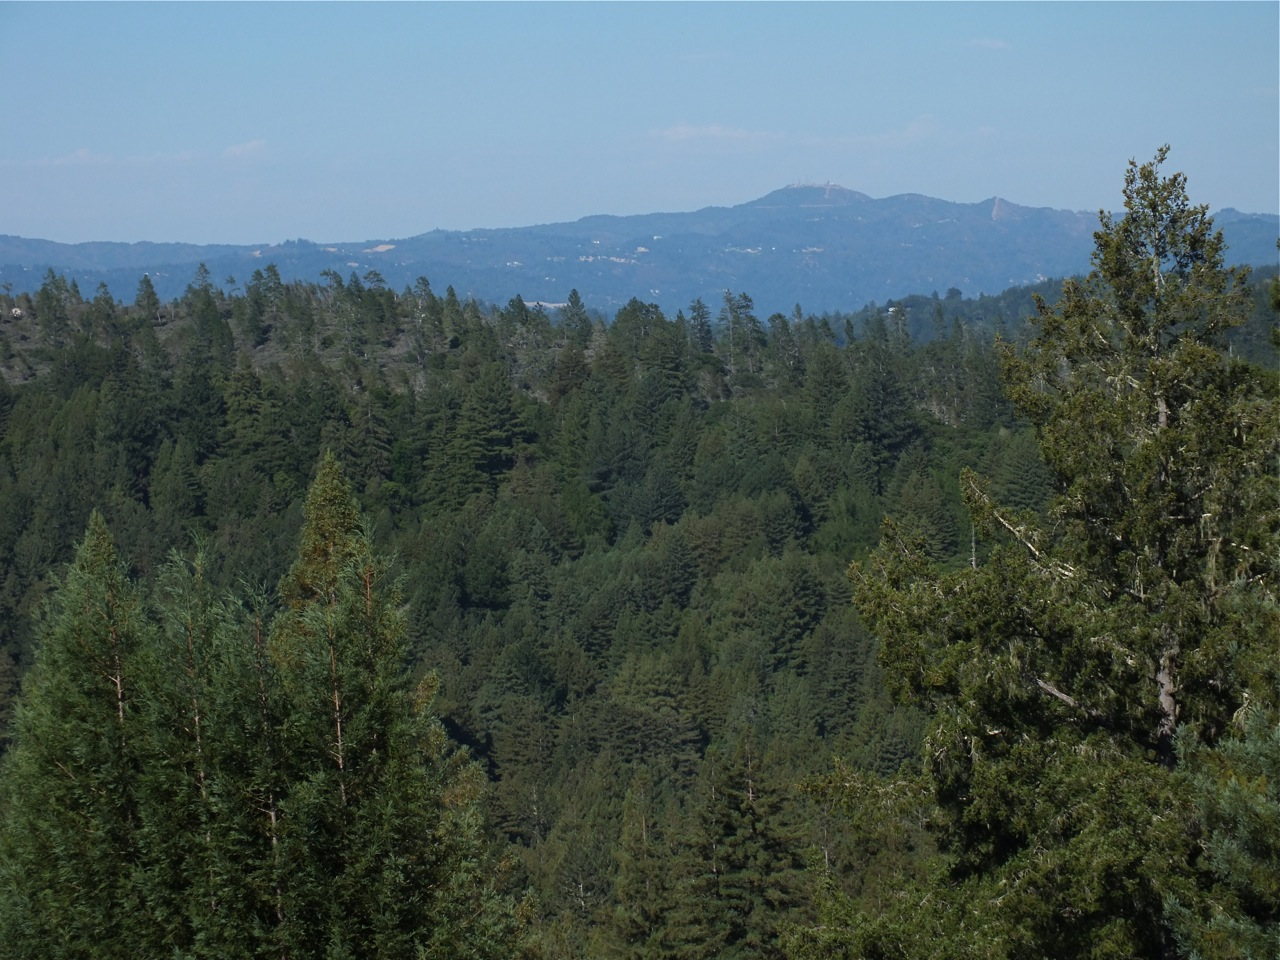 Loma Prieta, Roaring Camp Bear Mtn. in foreground from Ben Lomond Mountains